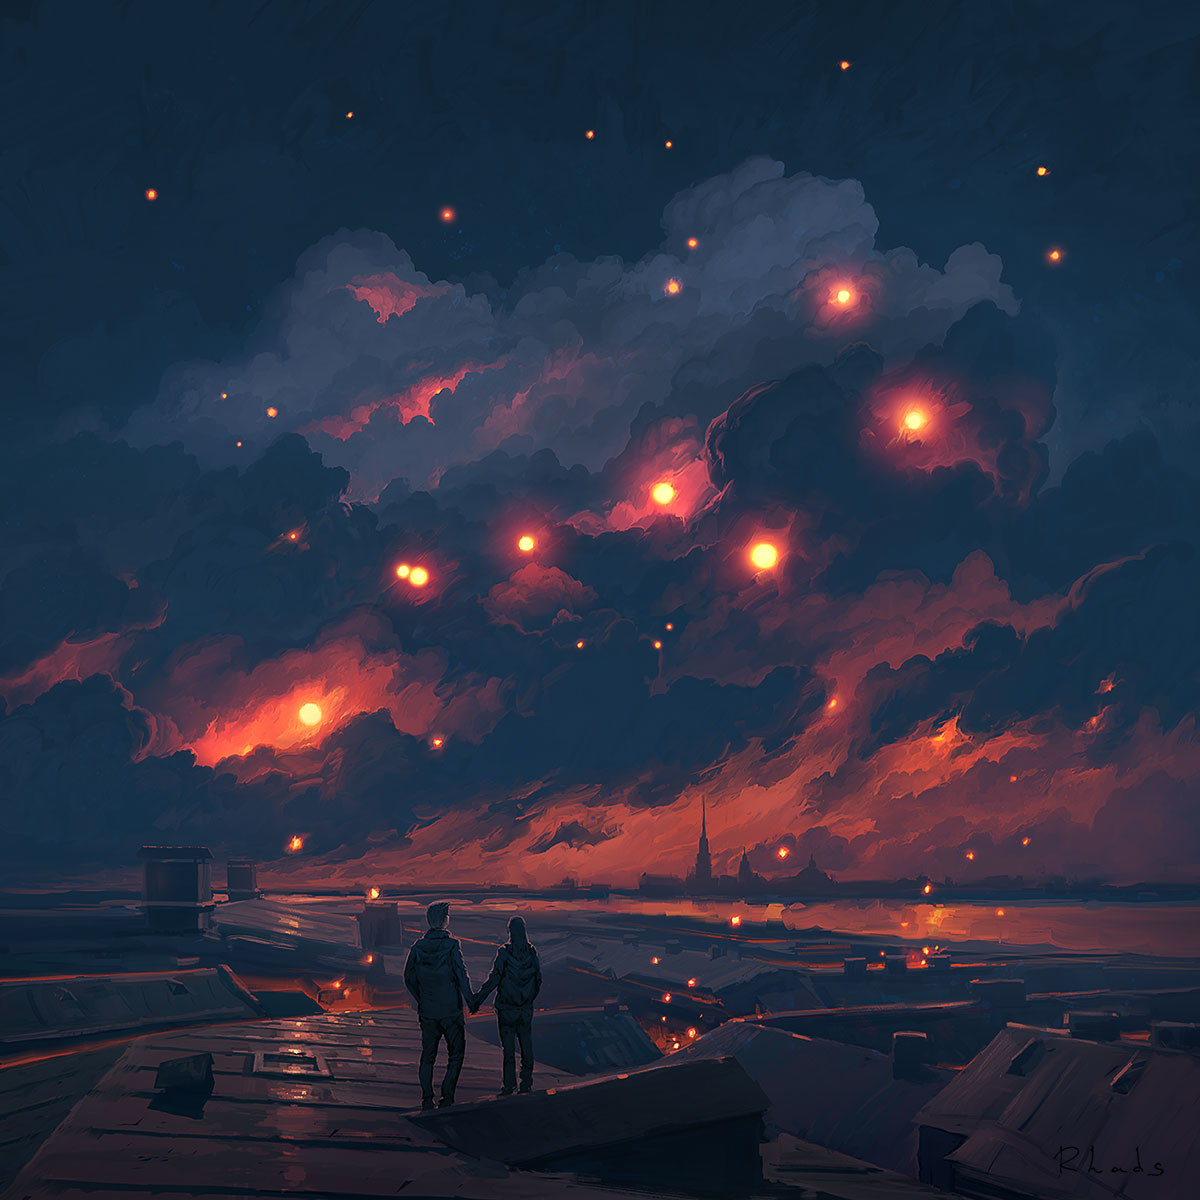 Digital Painting Illustration Artem Chebokha Rhads Night Lighting Stars